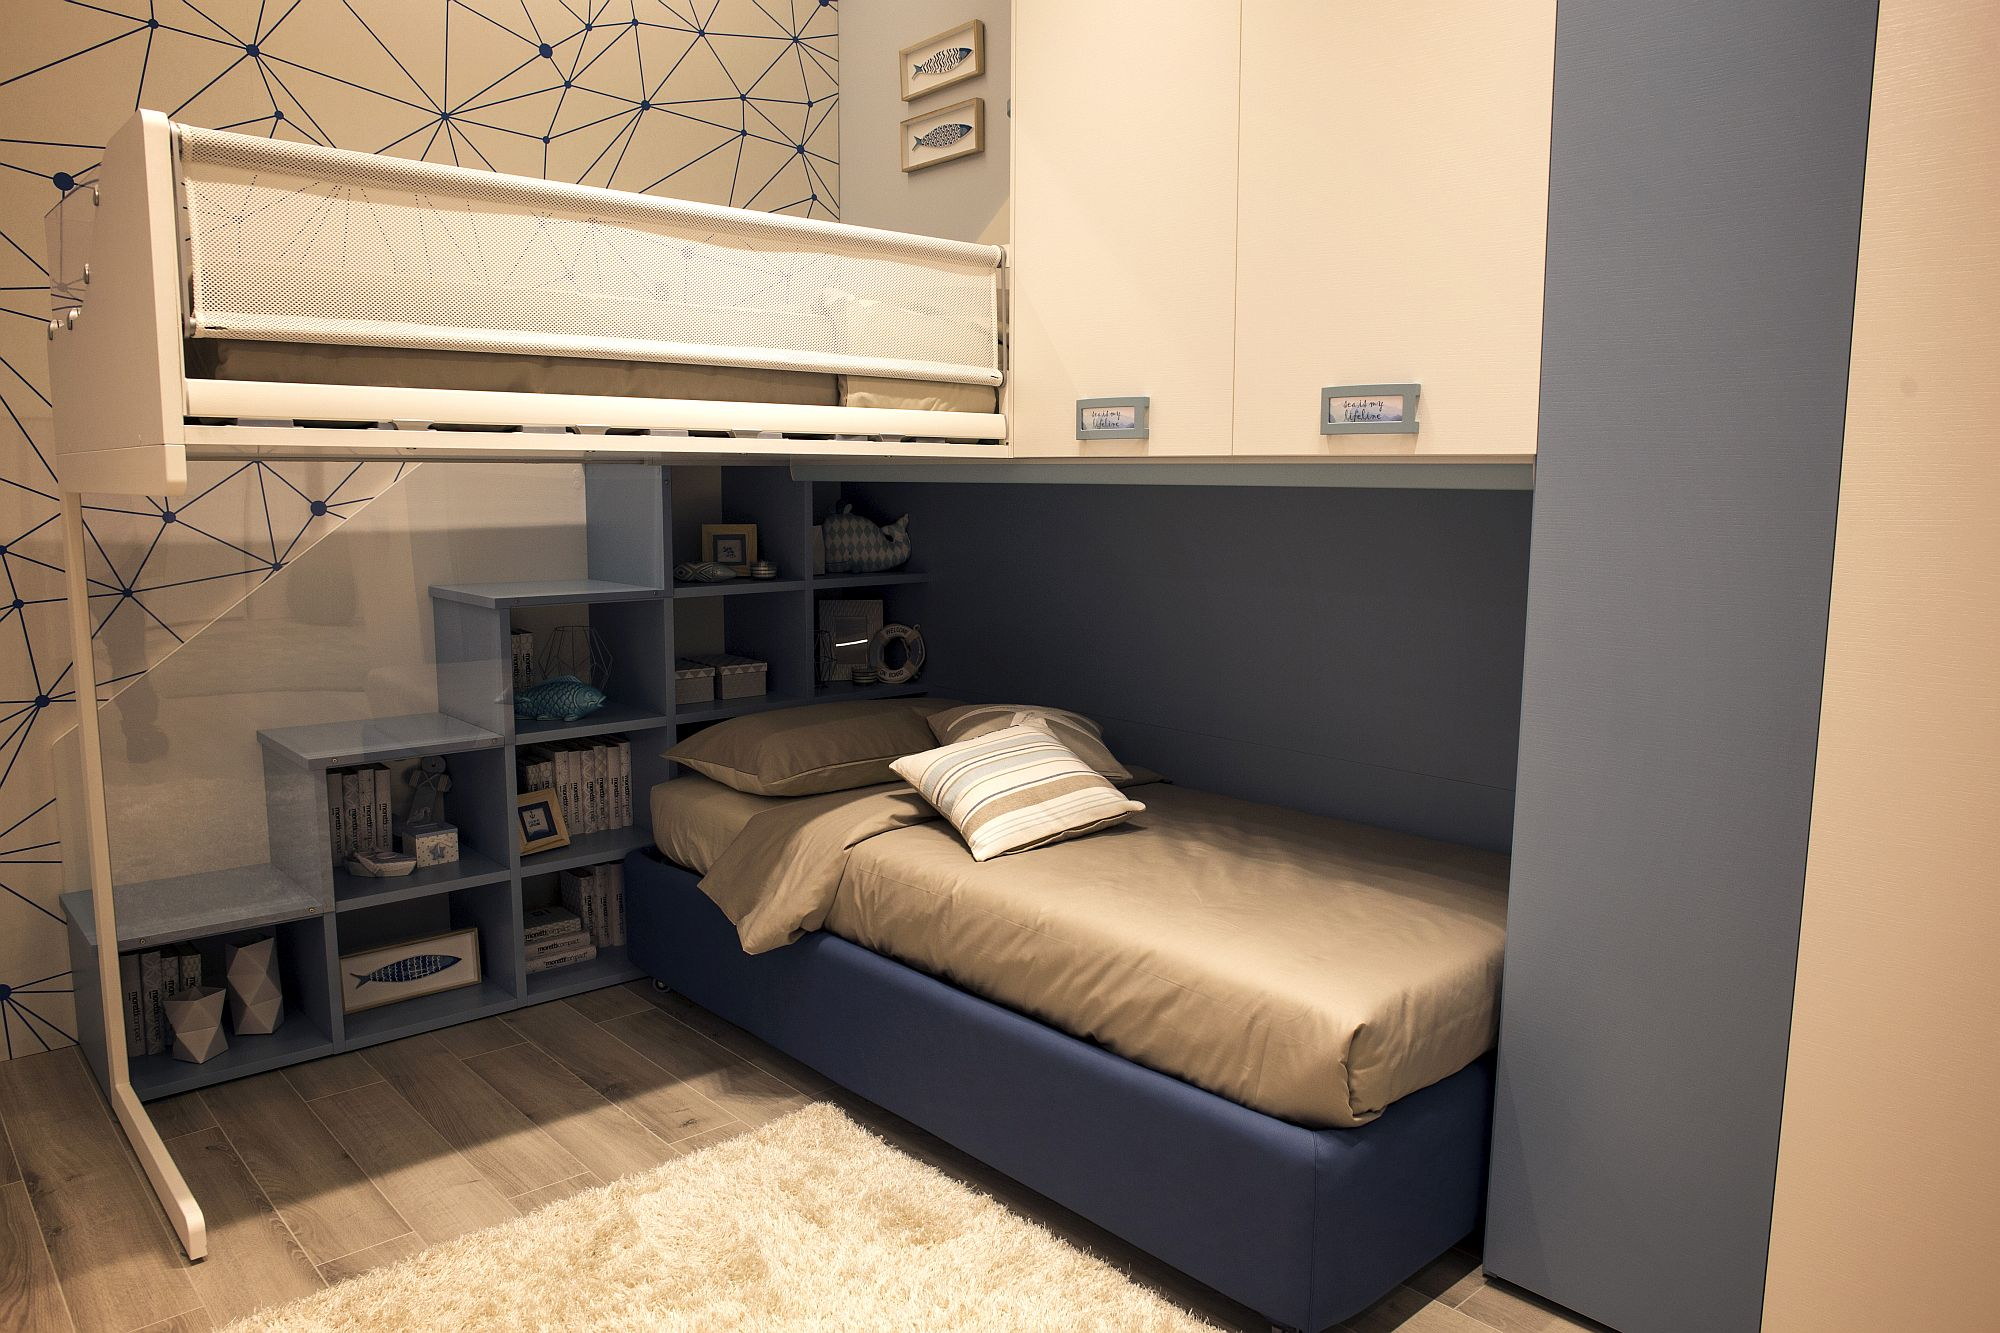 New design for kids' bedroom with corner bunkbed and storage above